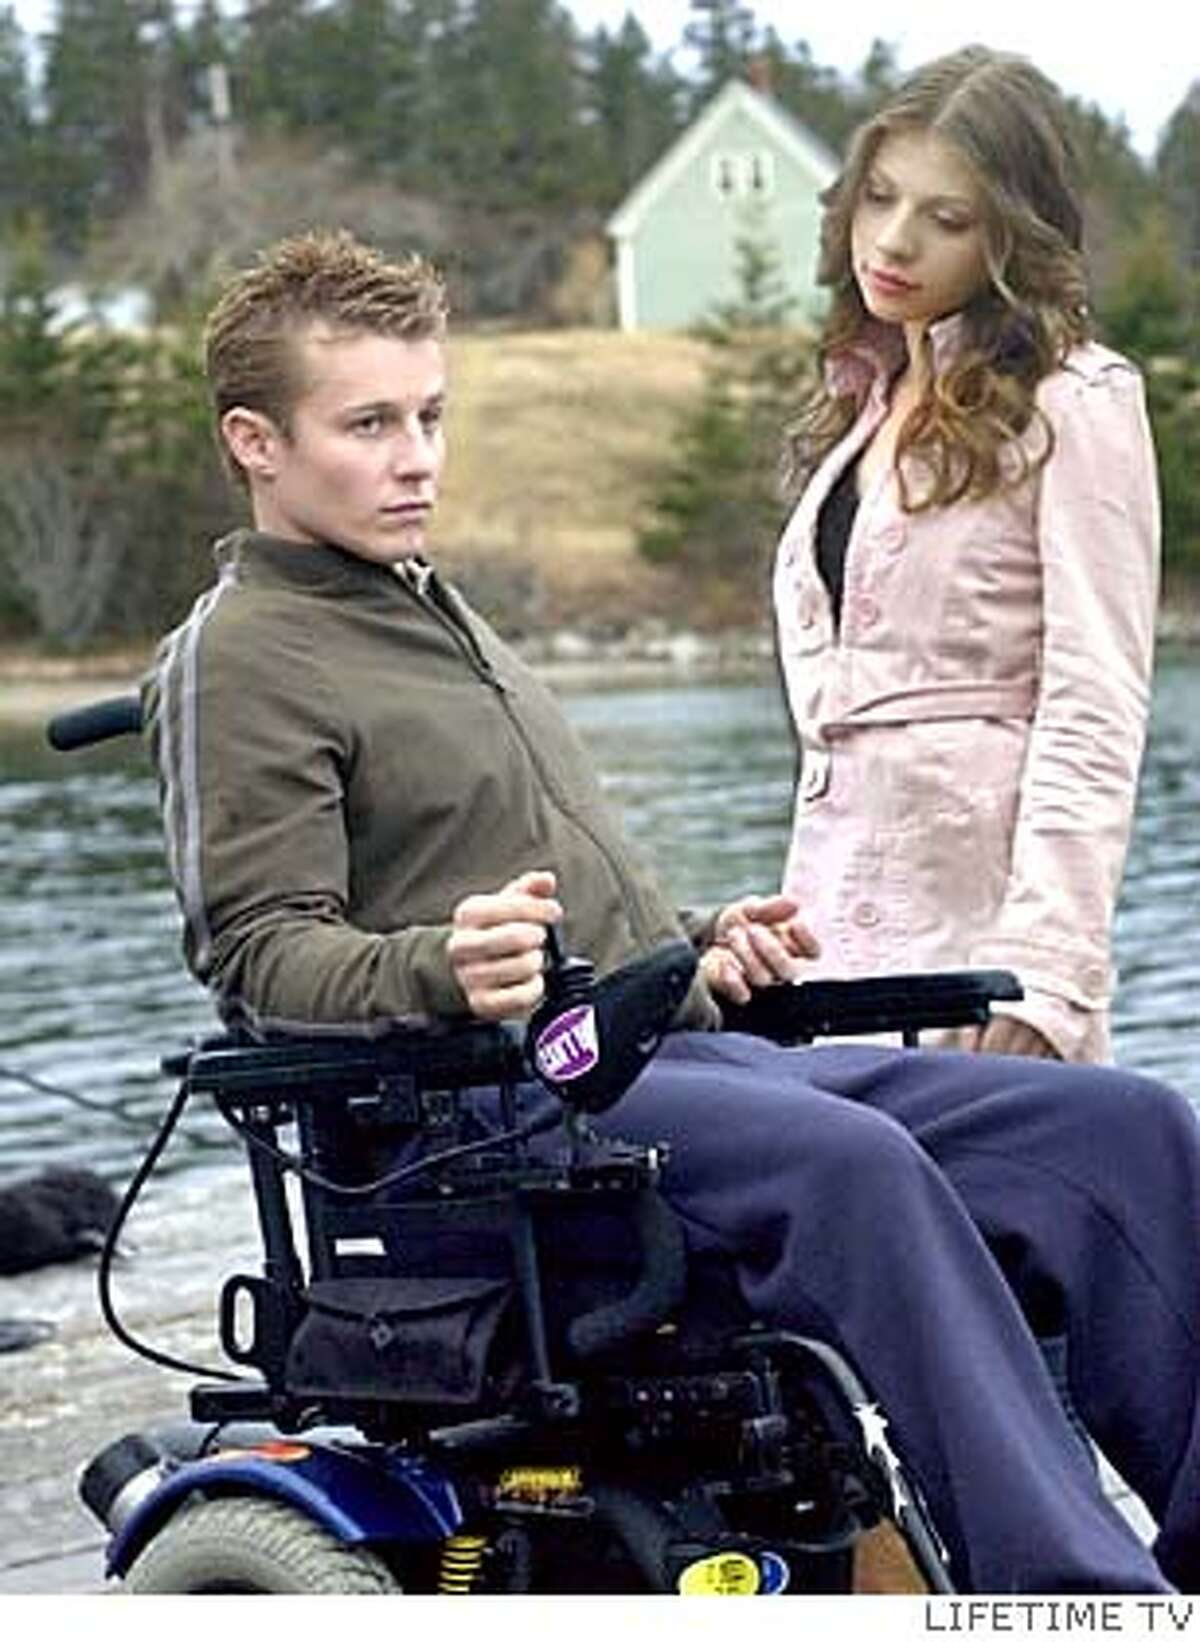 DIVE25_.JPG Michelle Trachtenberg (right) and Will Estes (left) star in The Dive From Clausens Pier, a film based on Ann Packers spellbinding novel about a young womans quest to find herself after her fianc is paralyzed in a diving accident. LIFETIME TV